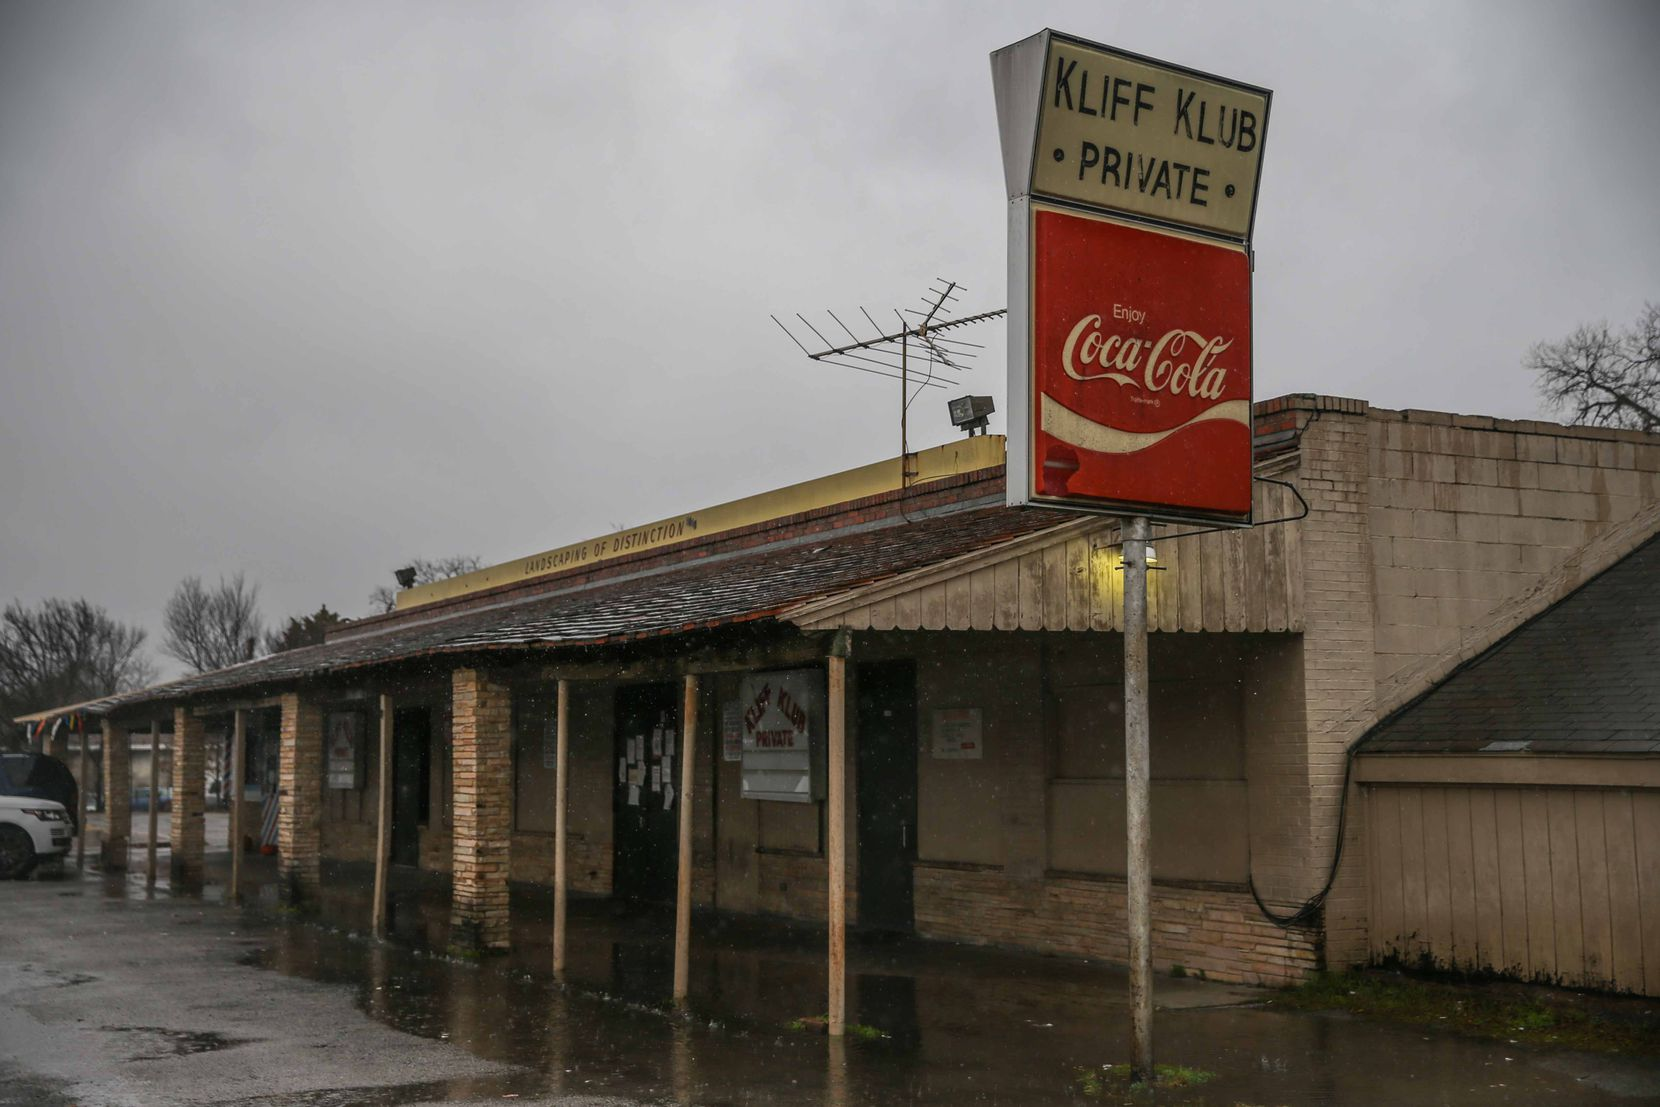 One of Oak Cliff's oldest nightclubs, the Kliff Klub has been a place to drink and dance for 40 years.